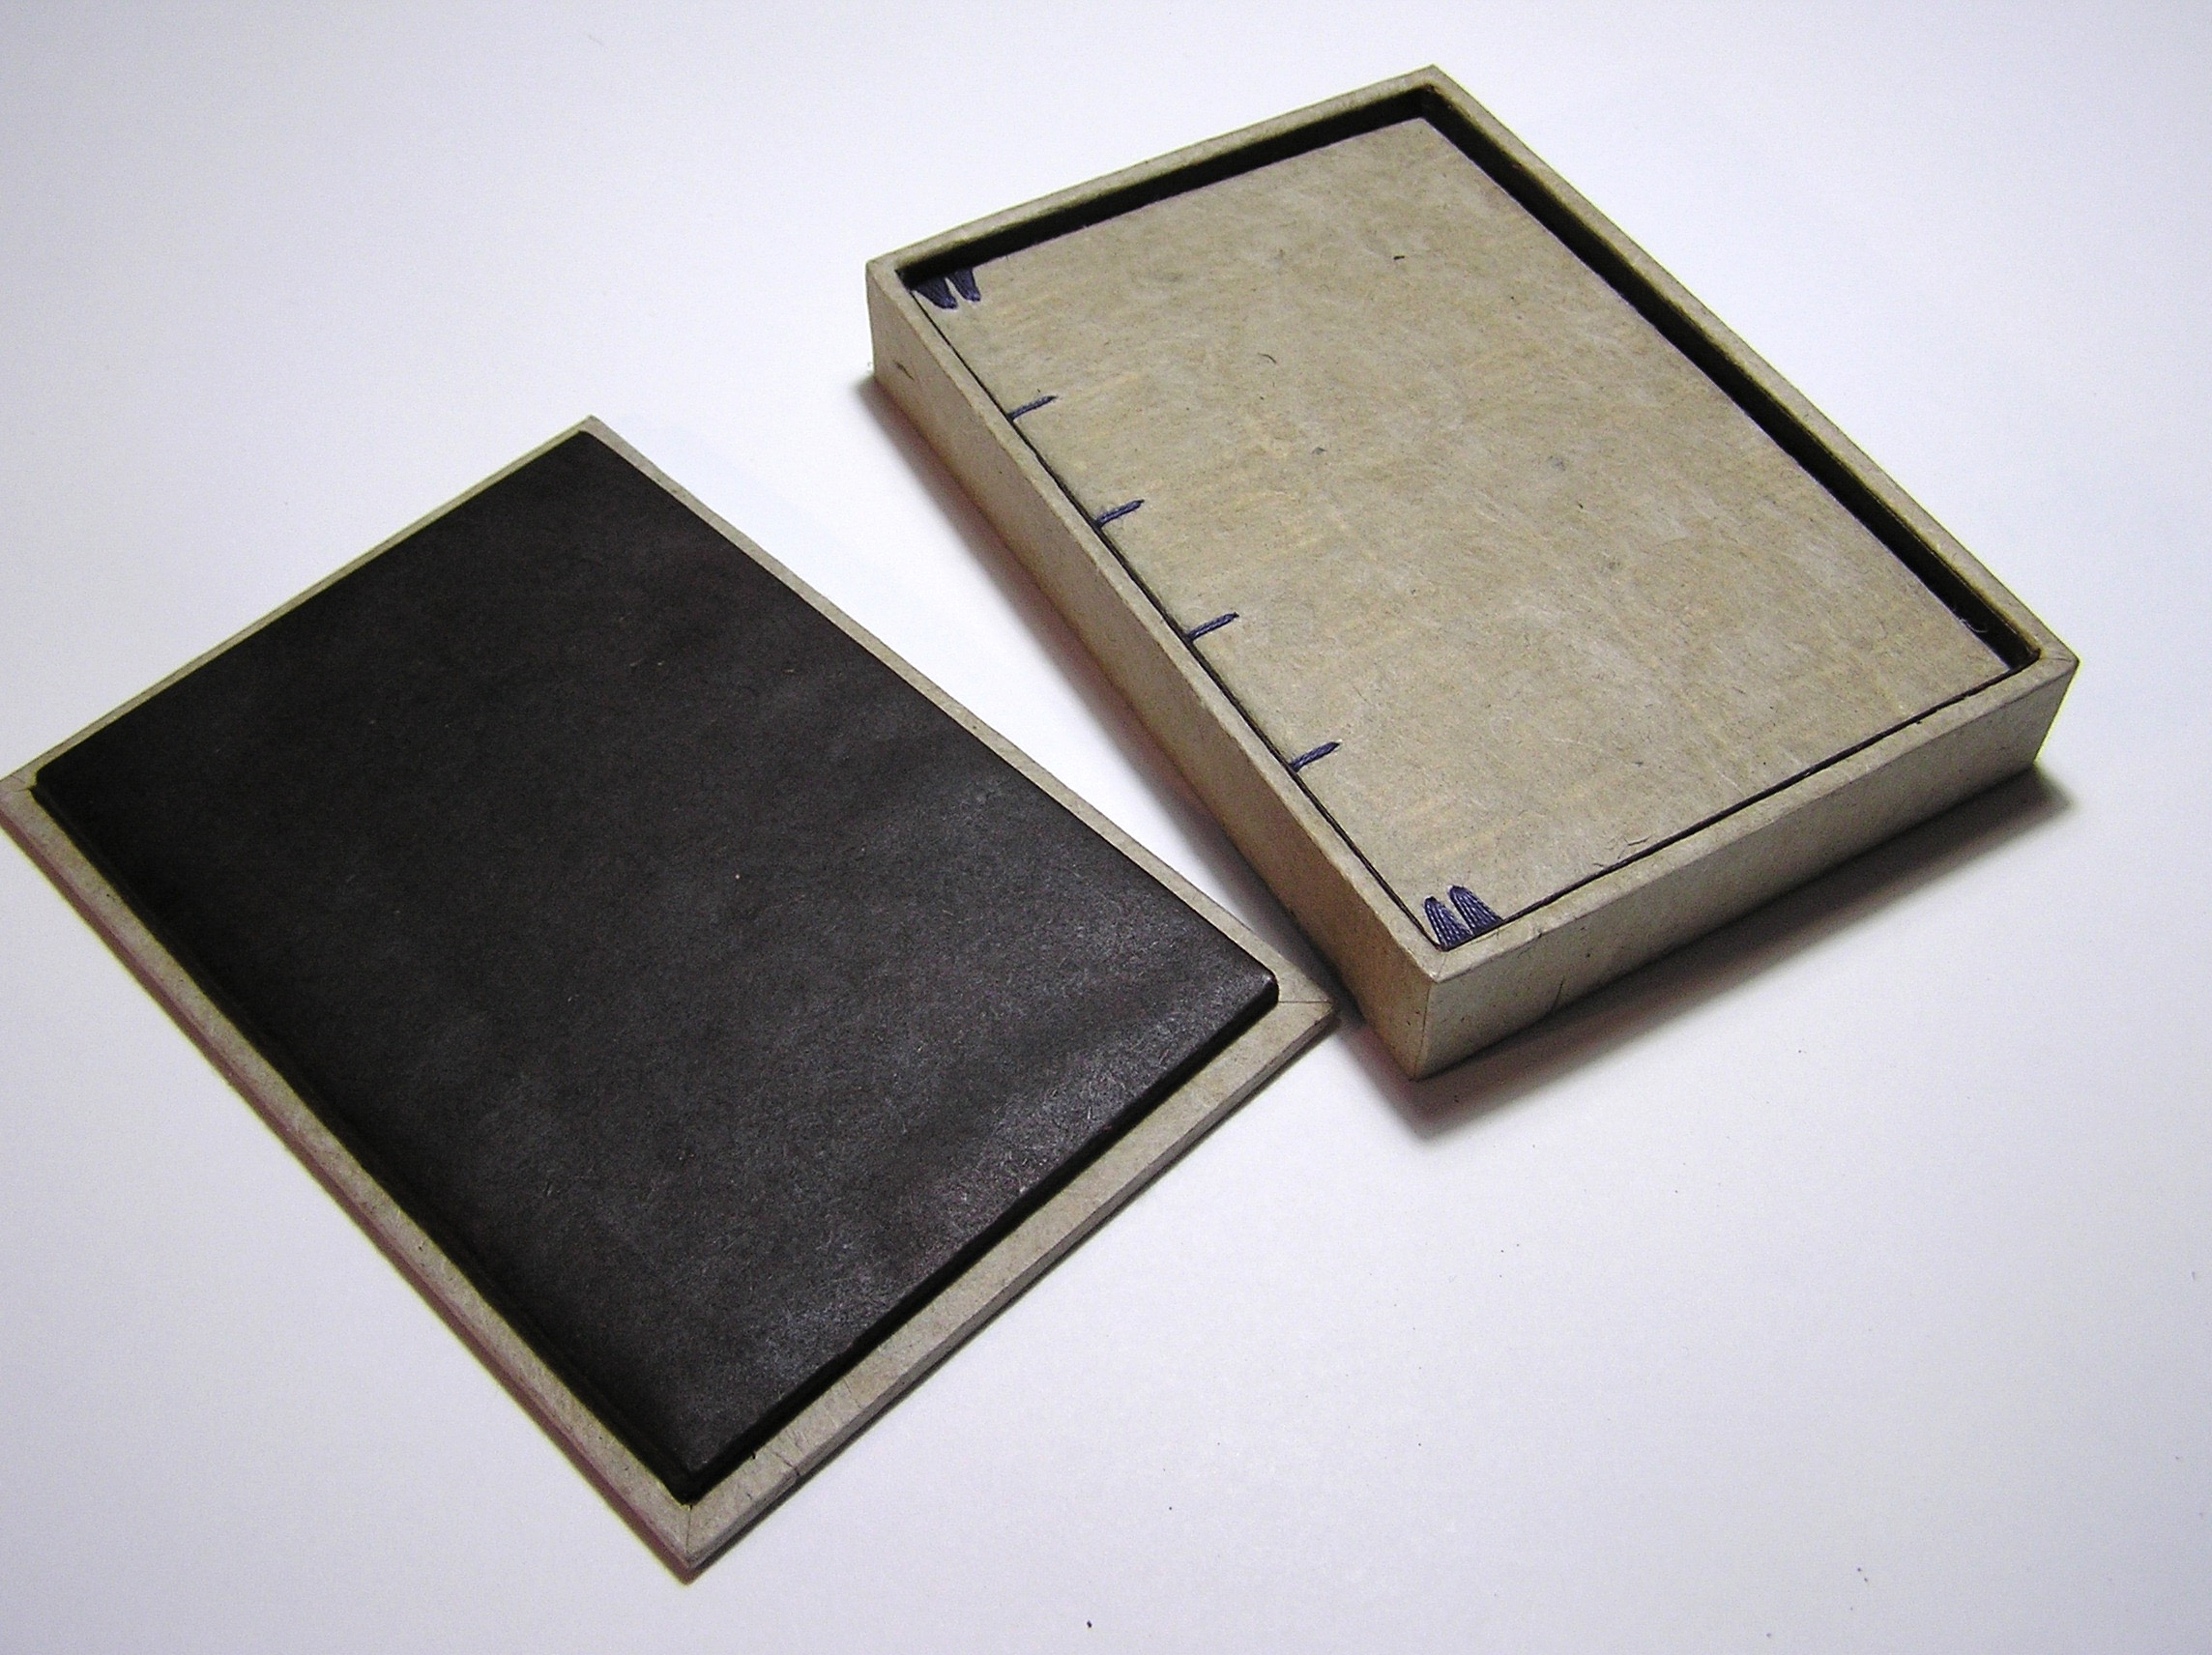 Small handmade book in a box. A poem is painted on the pages of the book as was commissioned for a wedding anniversary gift.